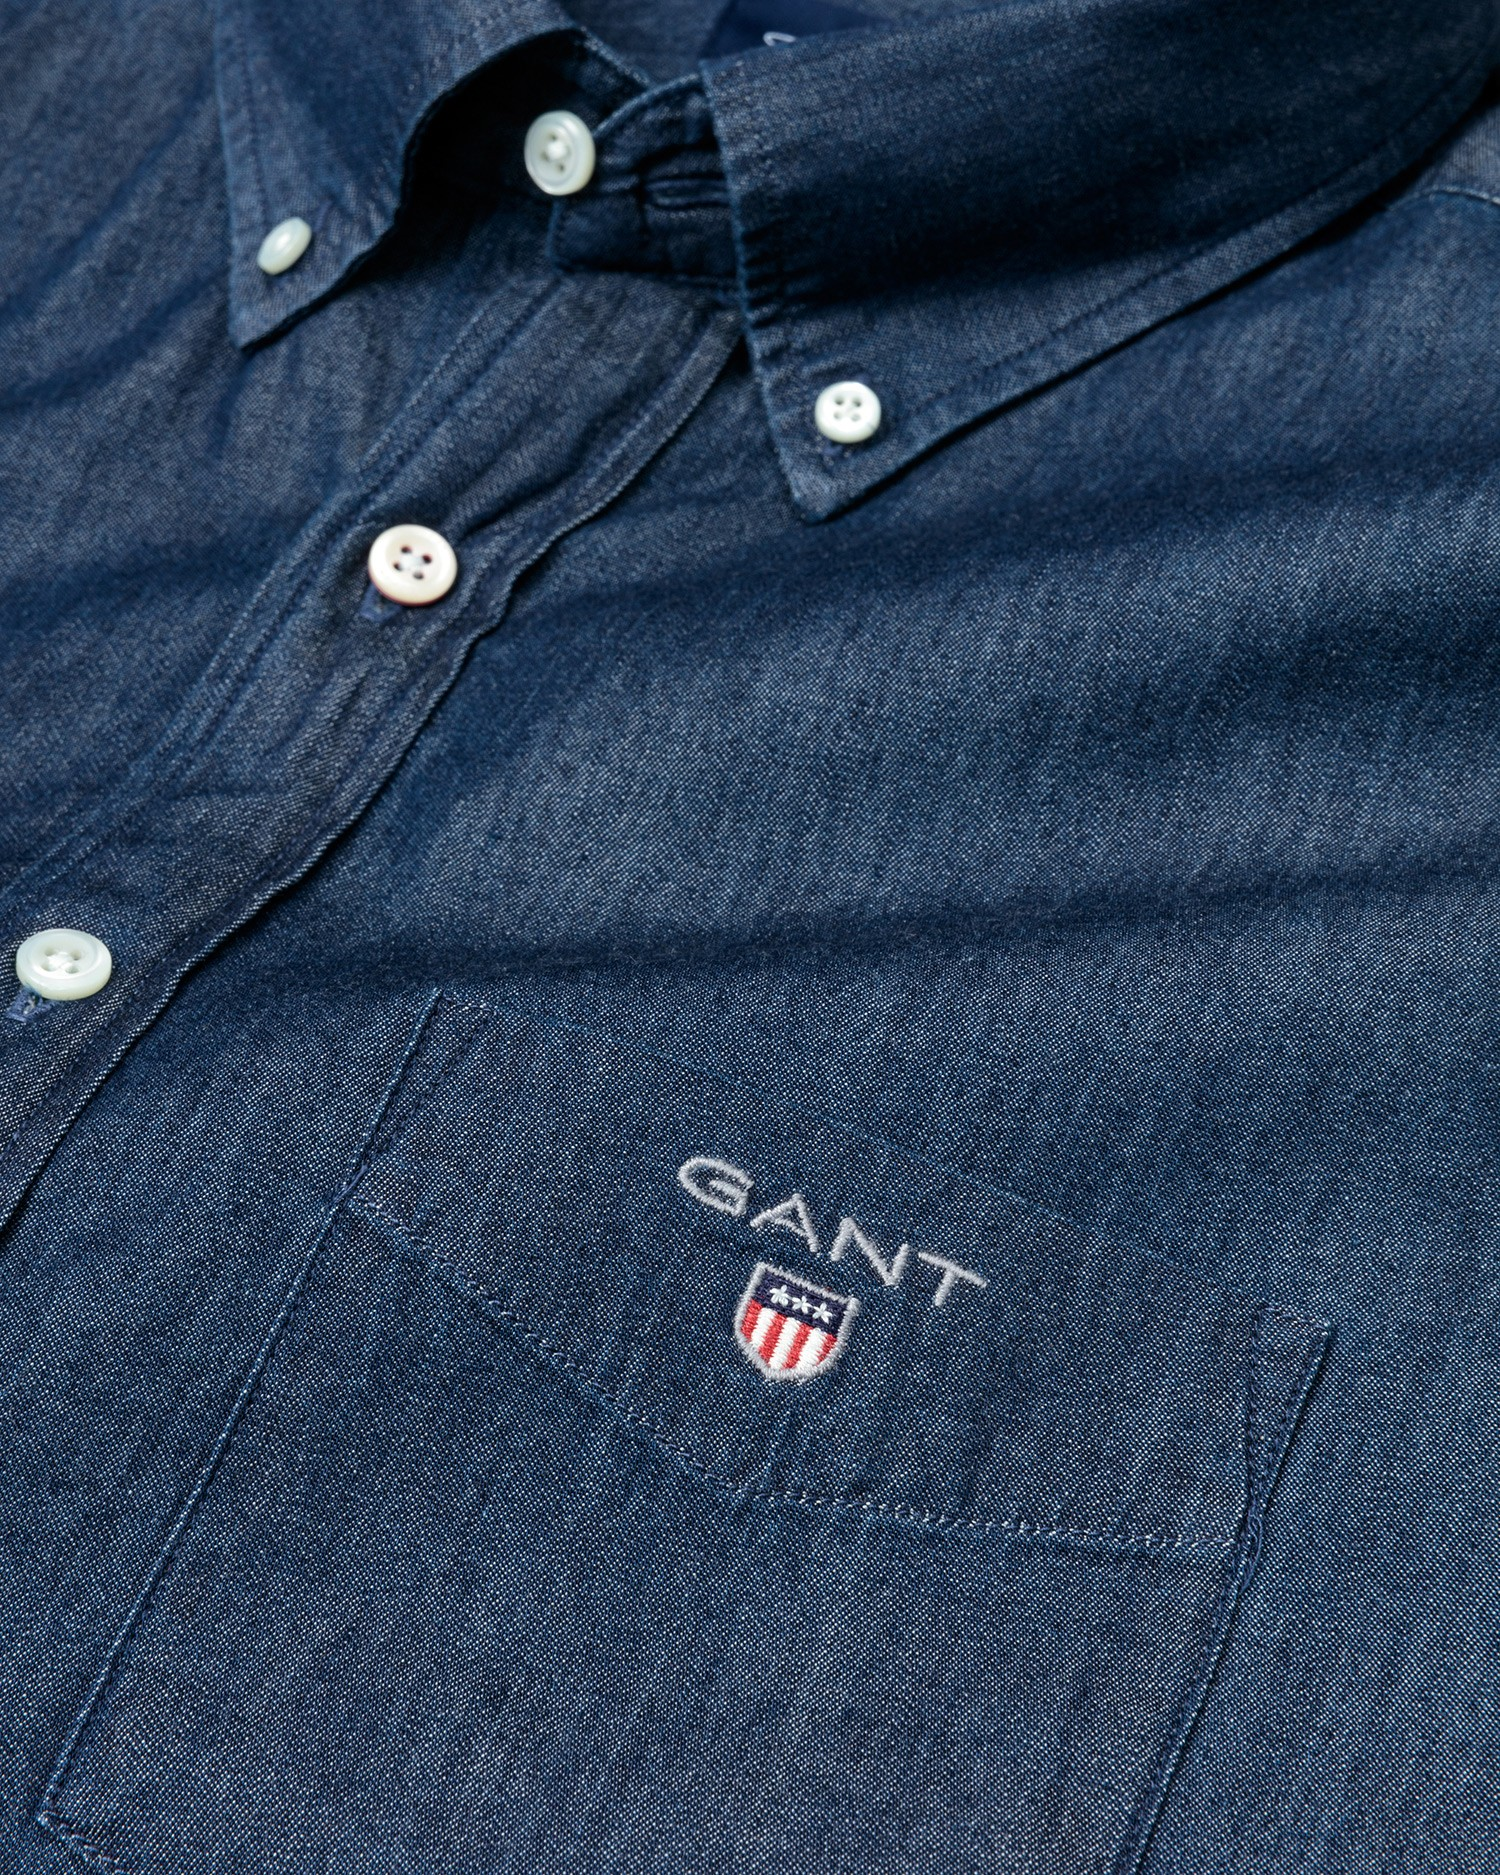 GANT Men's The indigo Regular Fit Broadcloth Shirts - 3040520